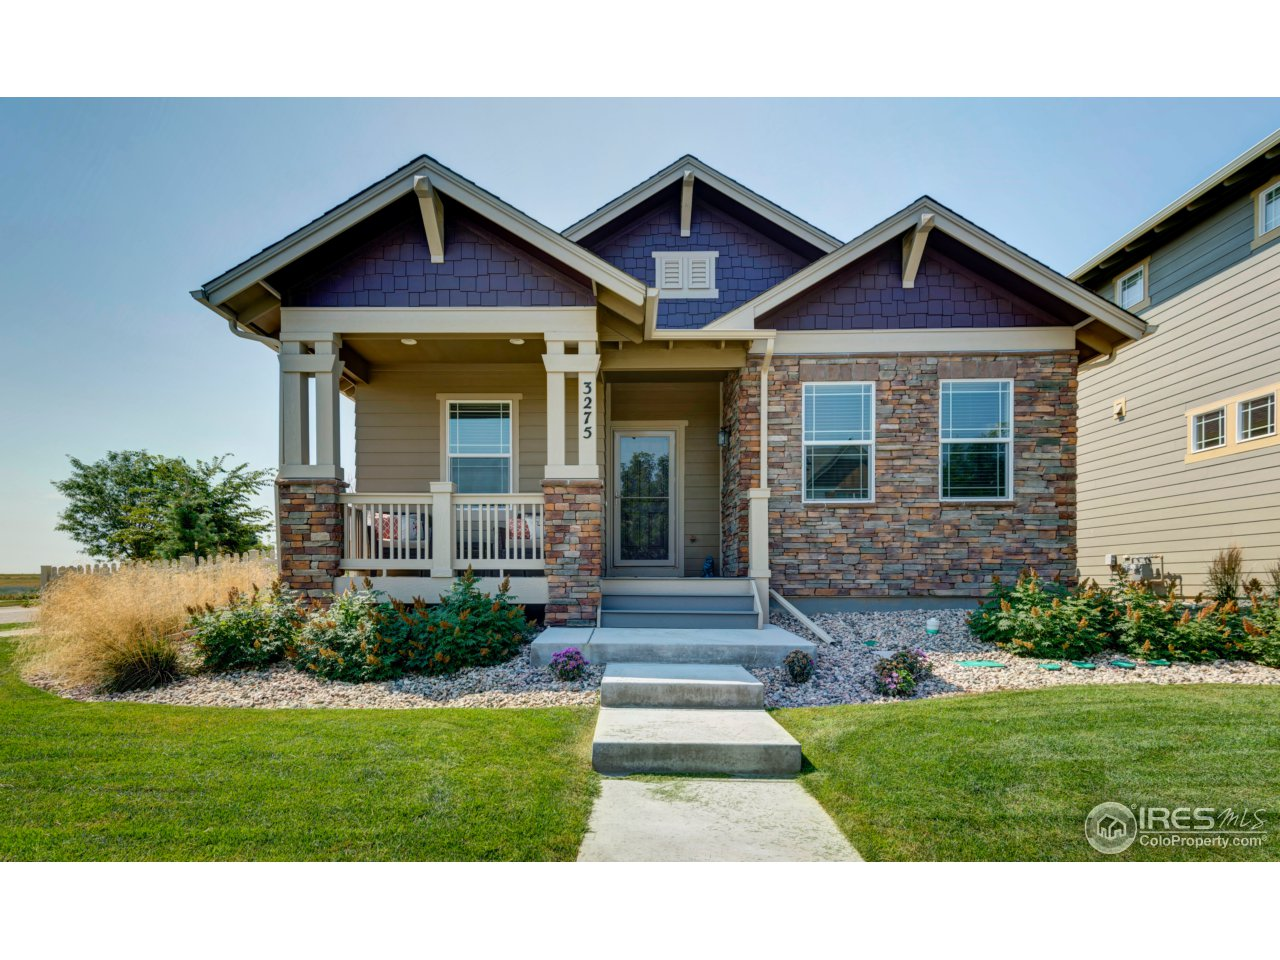 3275 Greenlake Dr, Fort Collins, CO 80524